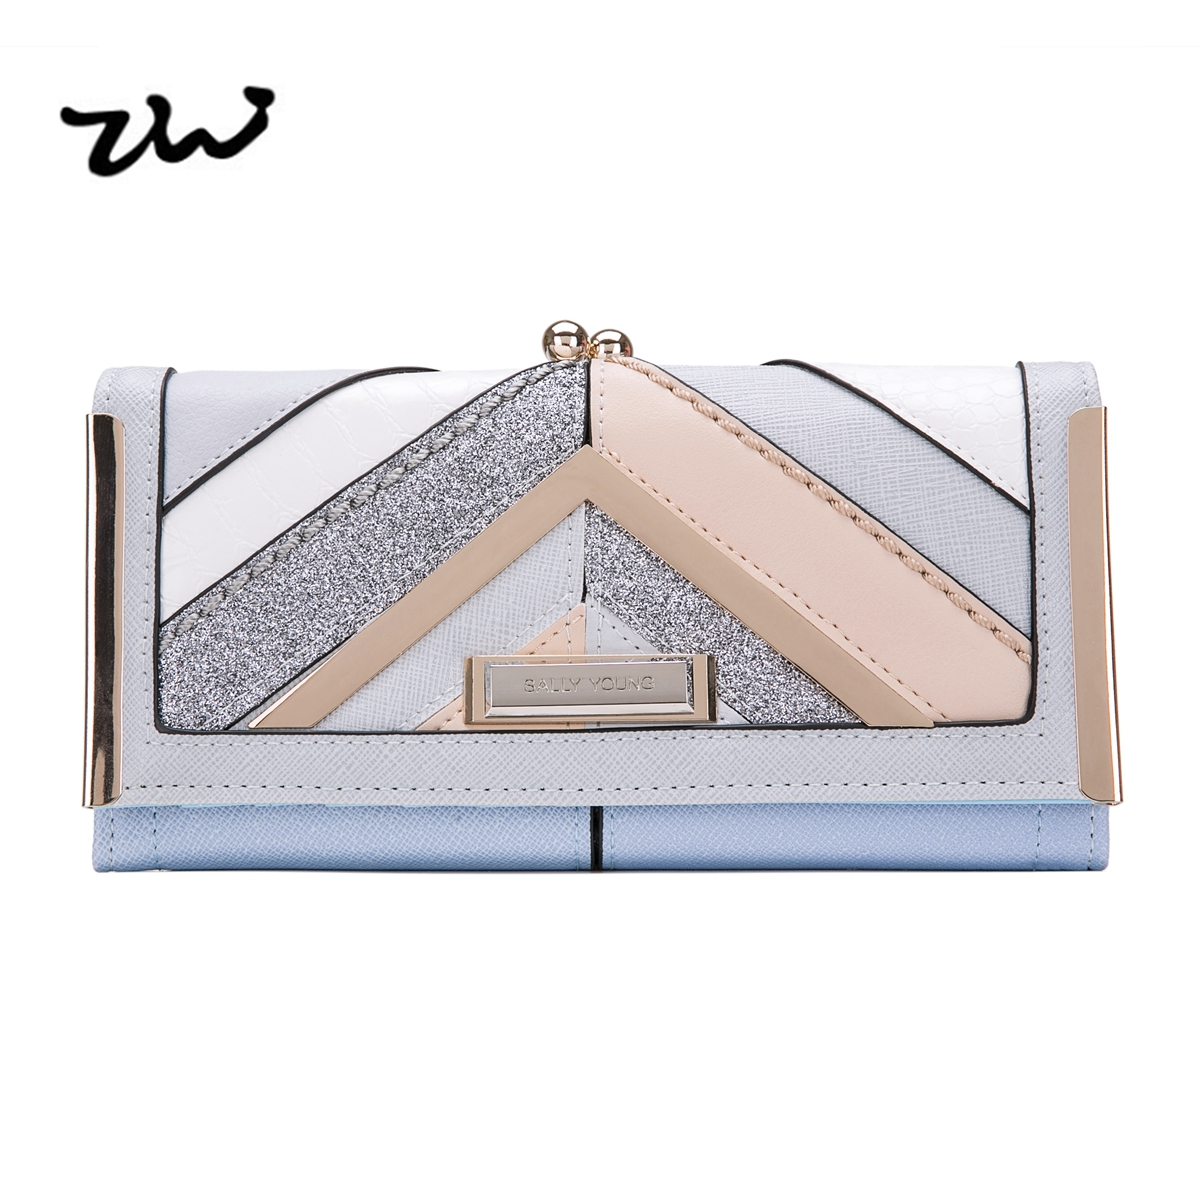 ZIWI 2017 New  Women Wallets For Credit Cards  Soft Pu Leather Fashion  Long Coin Purses Holders Splicing Color Pattern  SY5024<br>